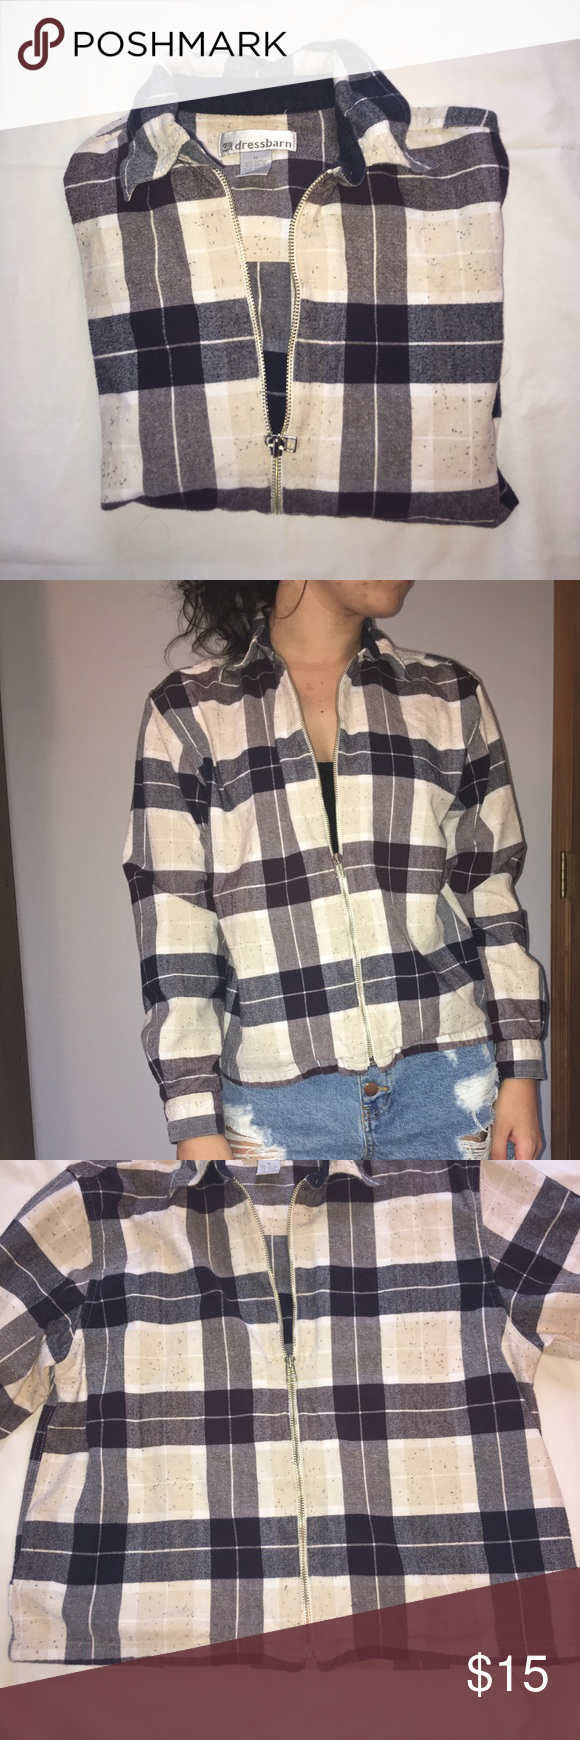 Retro flannel shirts  Retro Flannel zipup jacket  Summer evening Flannels and Dark blue